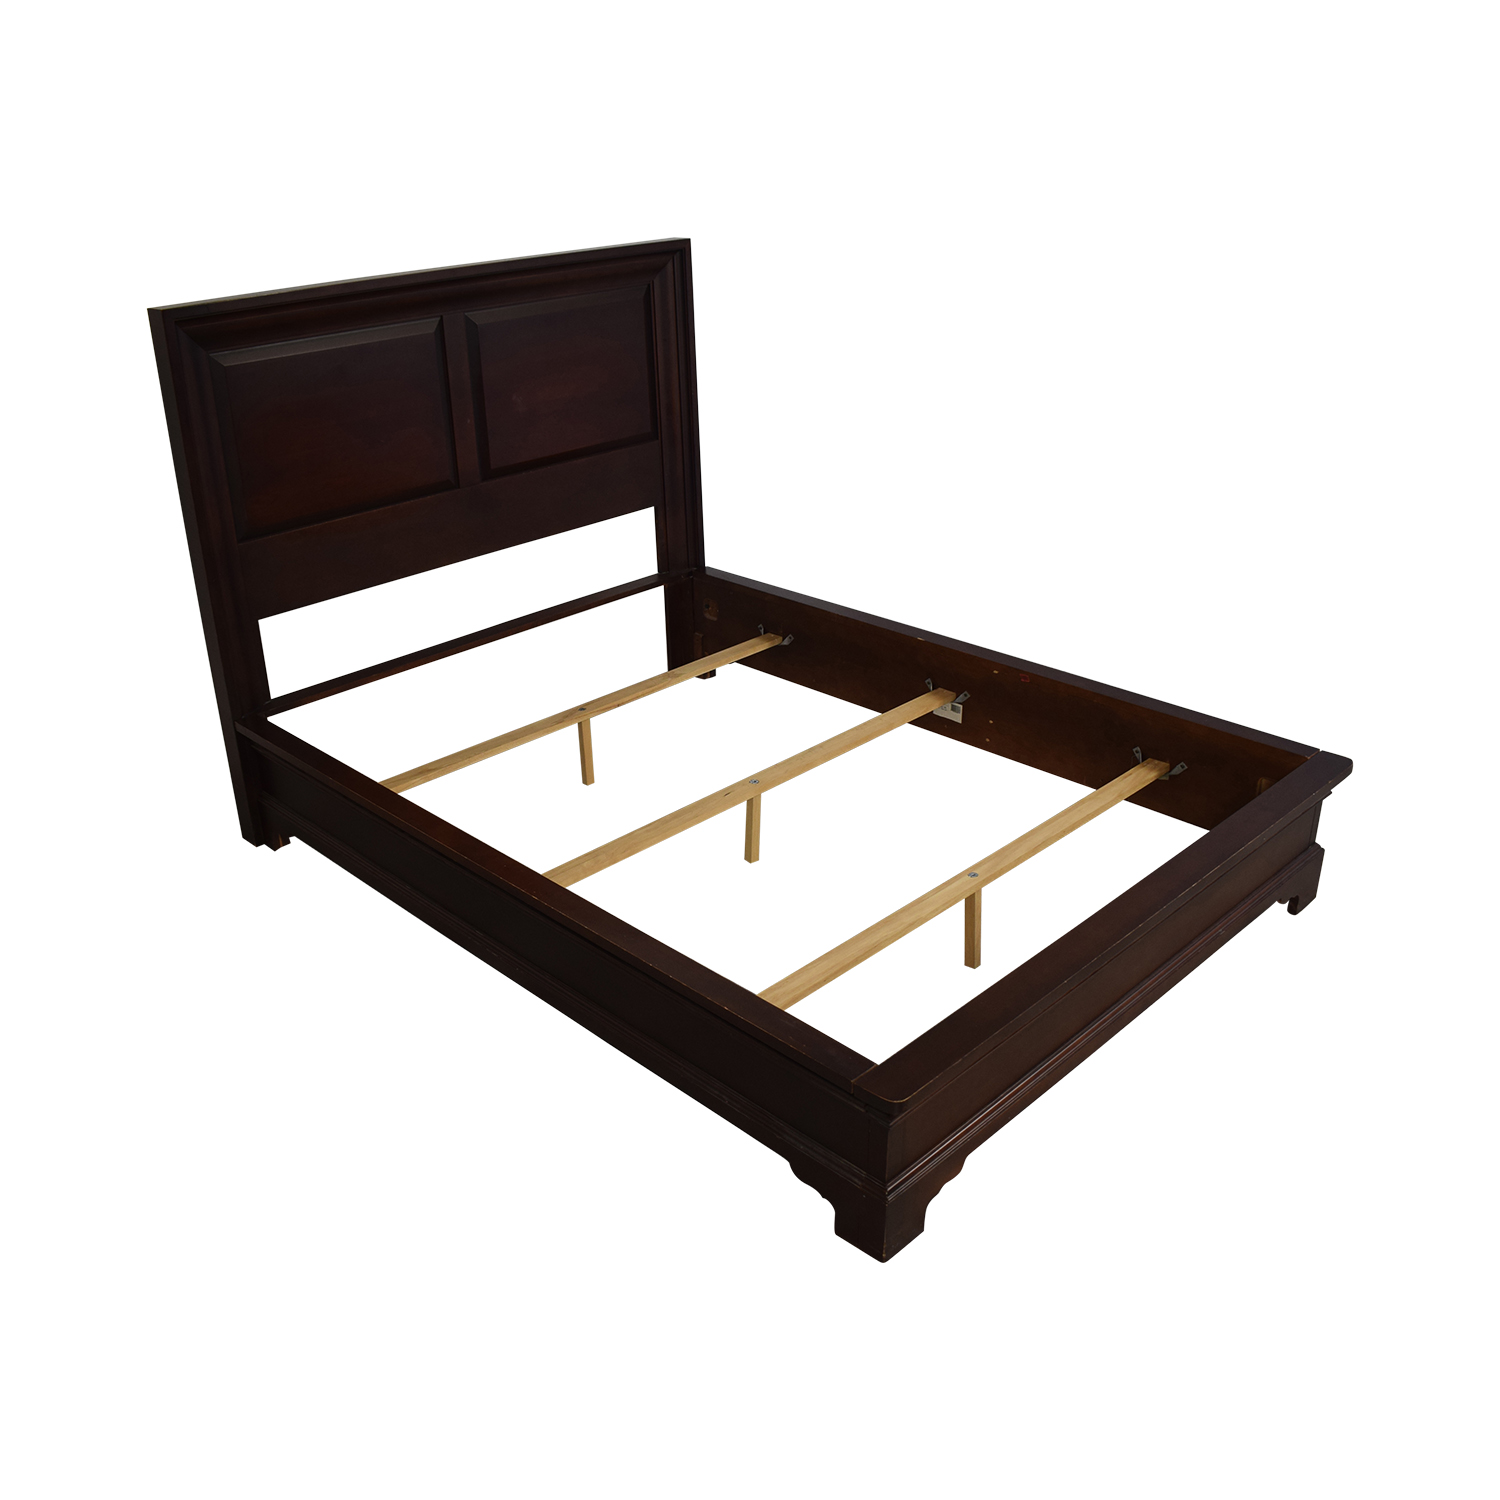 Shermag Shermag Queen Bed Frame used